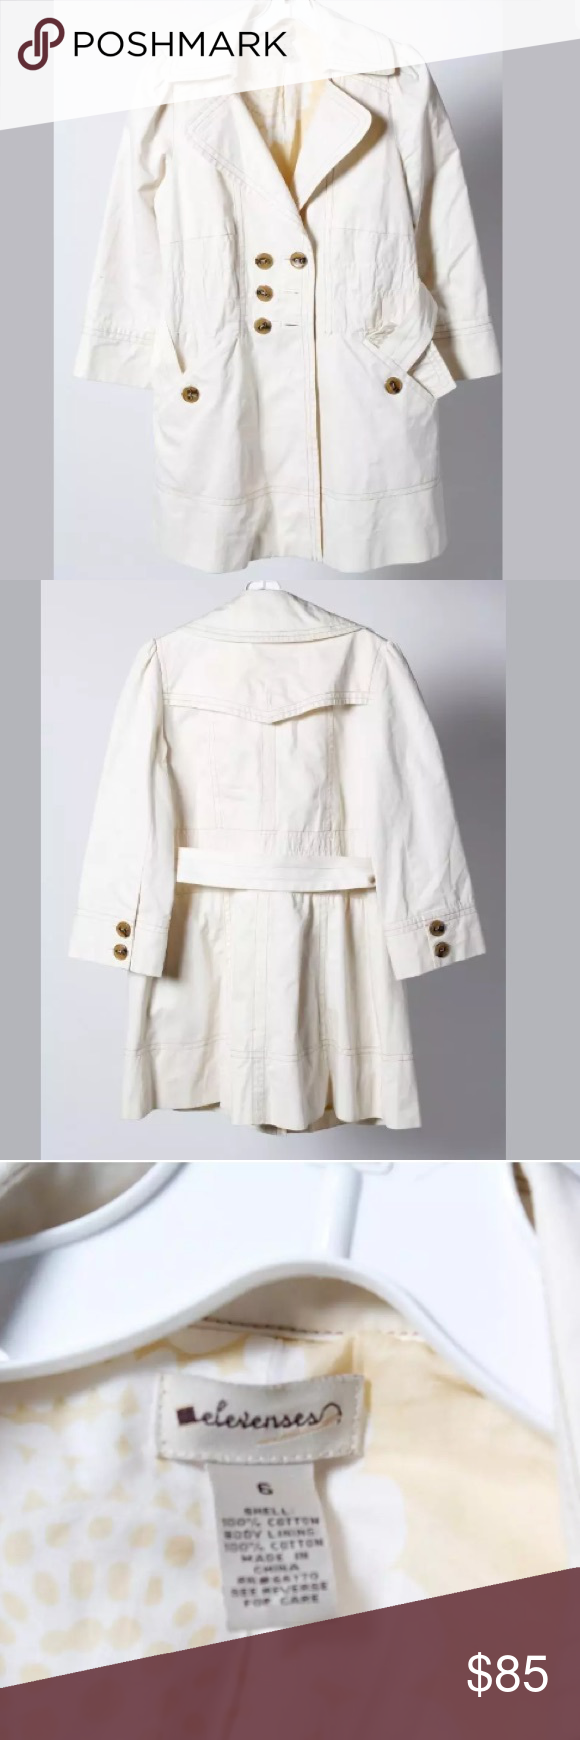 ❄️⚪️❄️ELEVENSES DOUBLE BREASTED, BELTED COAT❄️⚪️❄️ ⚪️❄️THIS PRE-OWNED ELEVENSES DOUBLE BUTTON, BELTED COAT IS IN VERY GOOD CONDITION • The measurements were taken with item laying flat, un-stretched and posted in inches below....  Size on tag: 6 Shoulder to Shoulder: 14 Armpit to Armpit:18.5 Sleeve Length:20 Total Length:32 ❄️⚪️ Elevenses Jackets & Coats Trench Coats